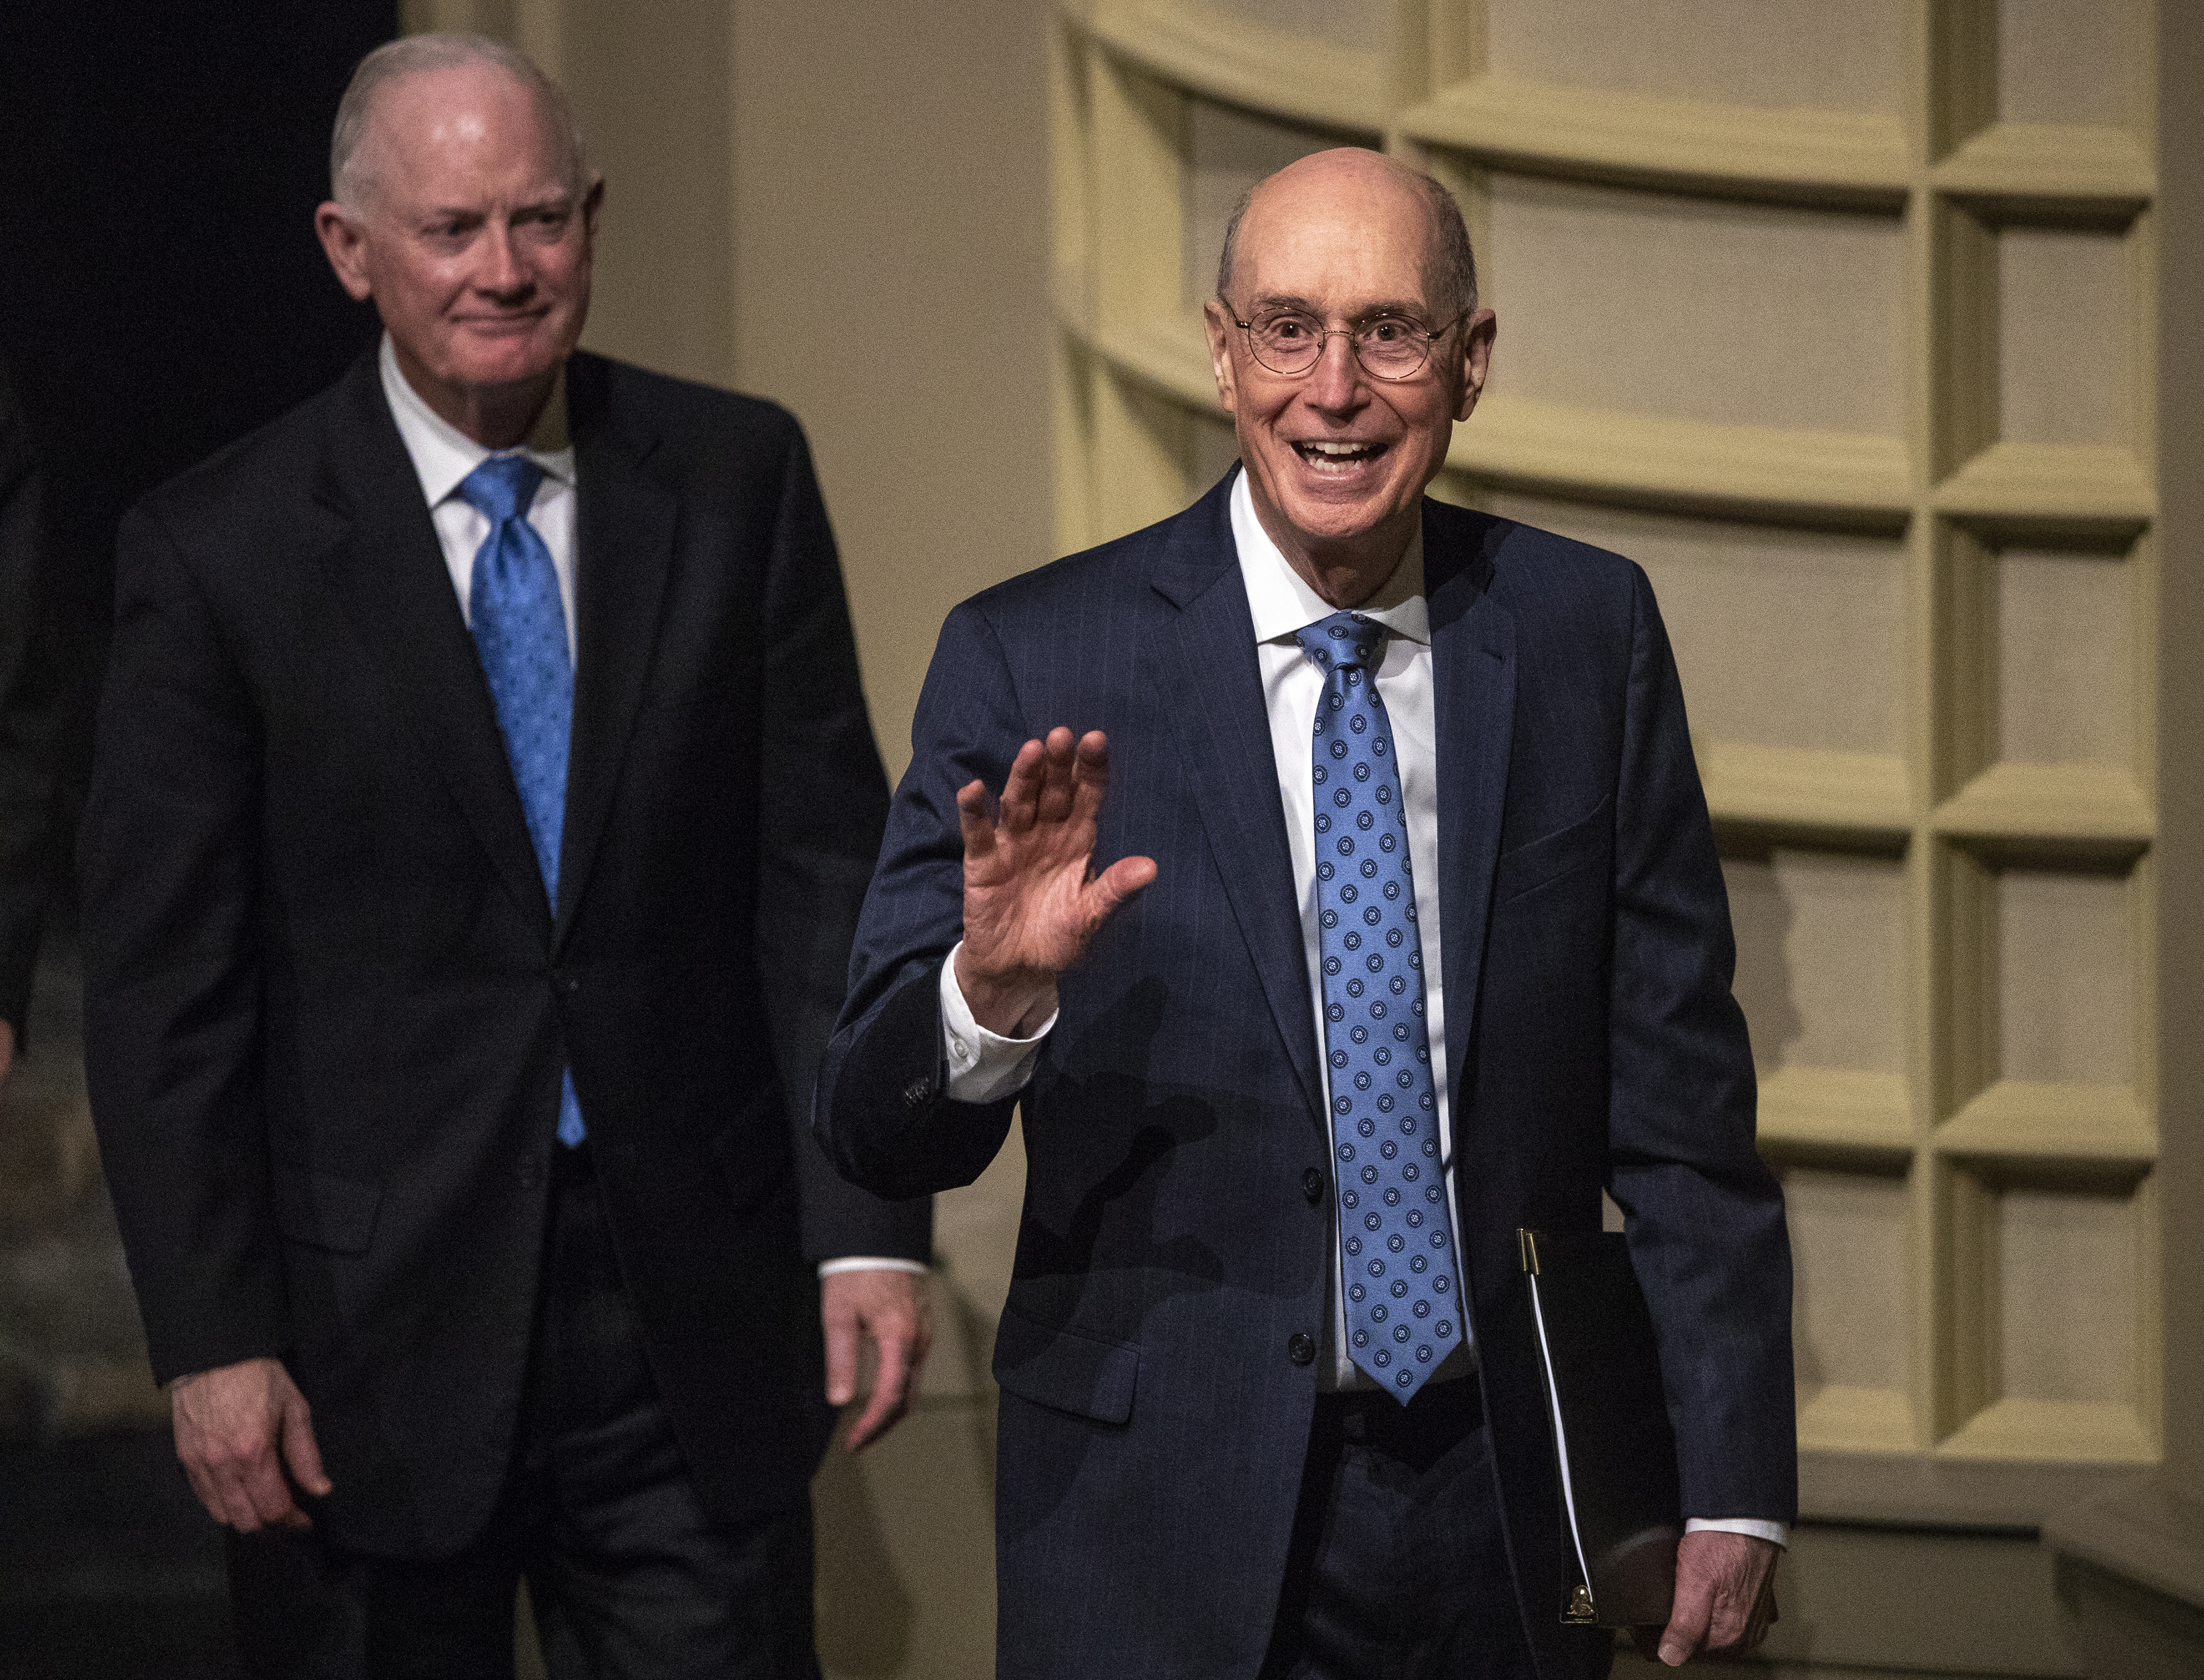 President Henry B. Eyring waves to the crowd as he and Elder Kim B. Clark, general Authority Seventy and commissioner of Church education exit after President Eyring spoke to LDS Business College students at a devotional in the Conference Center theater in Salt Lake City on Tuesday, Nov. 6, 2018.